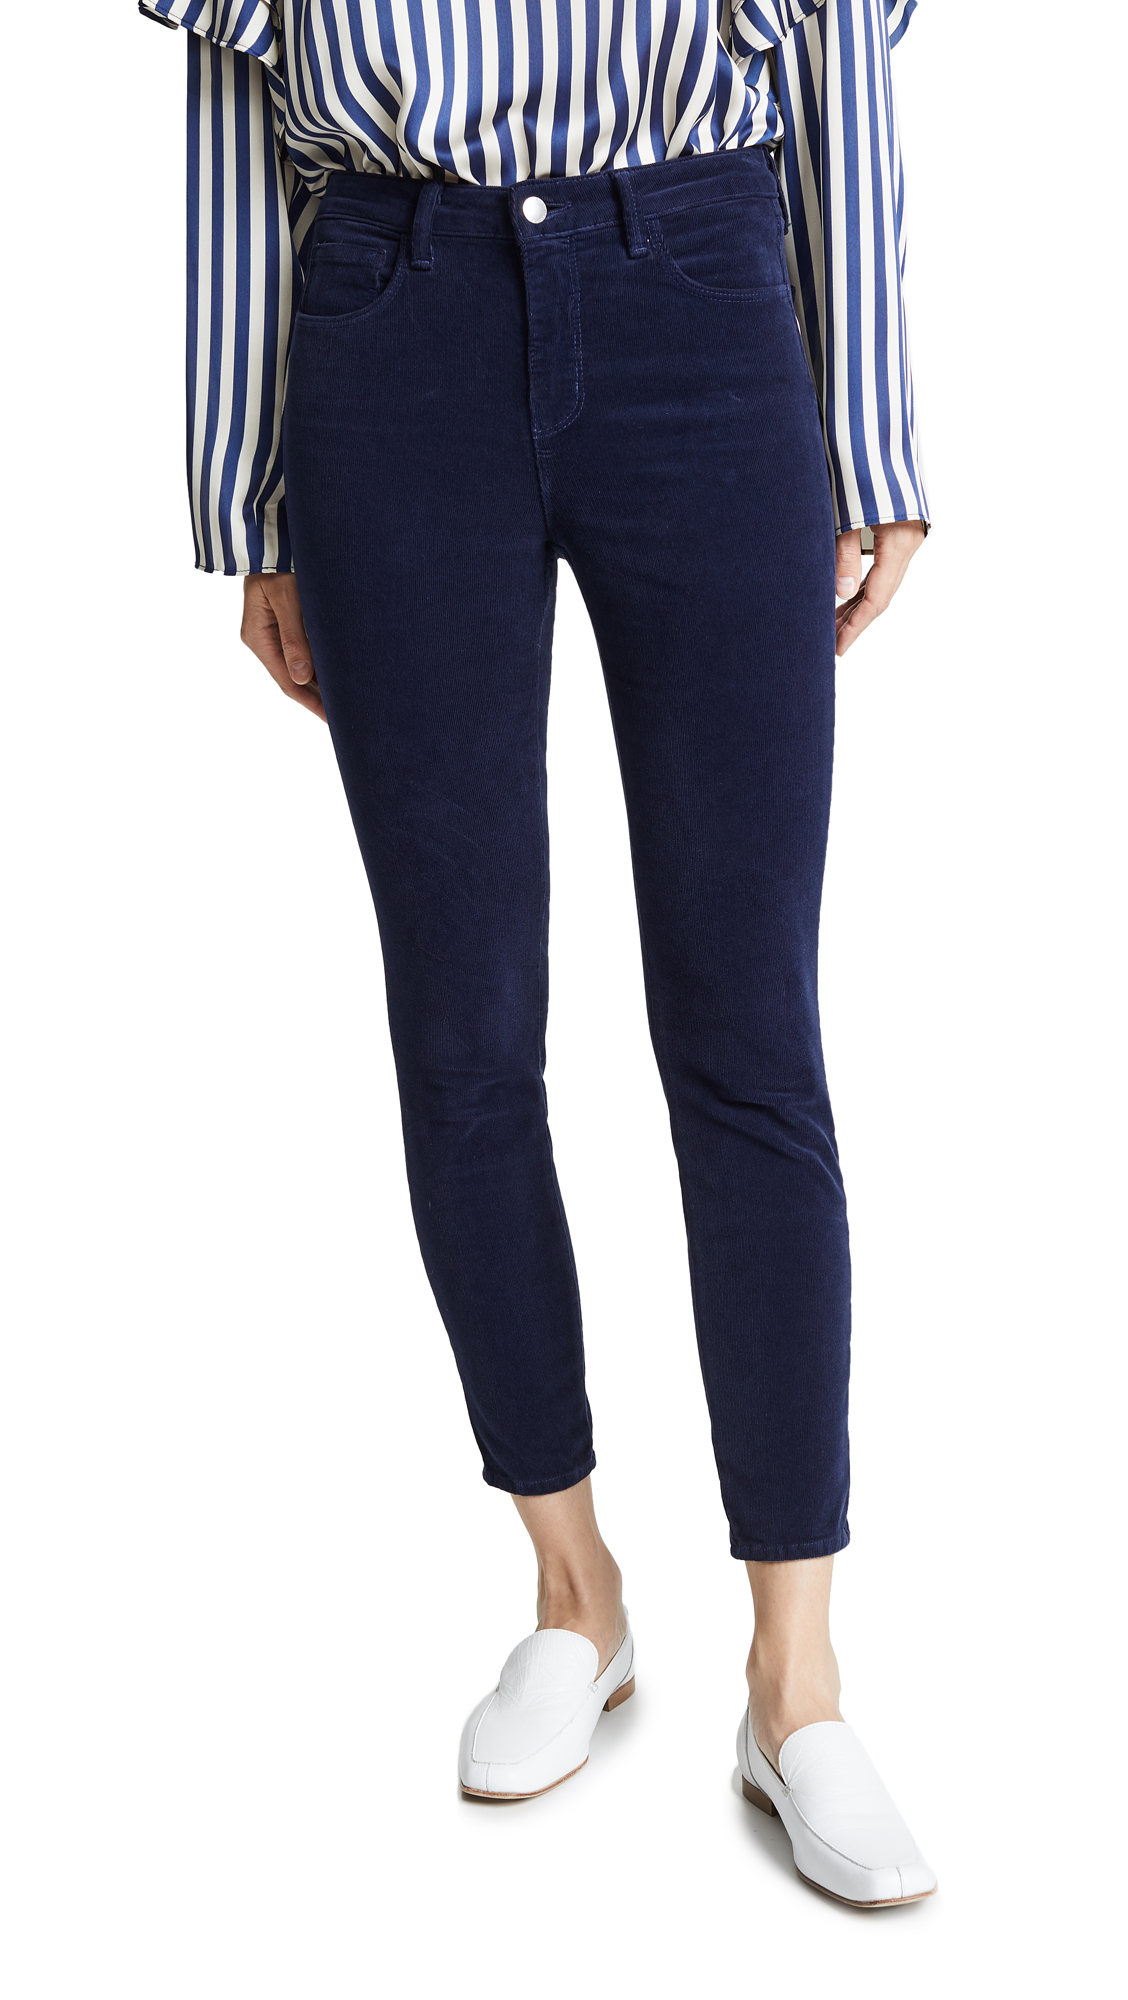 L'AGENCE Margot High Rise Corduroy Skinny Jeans In Navy